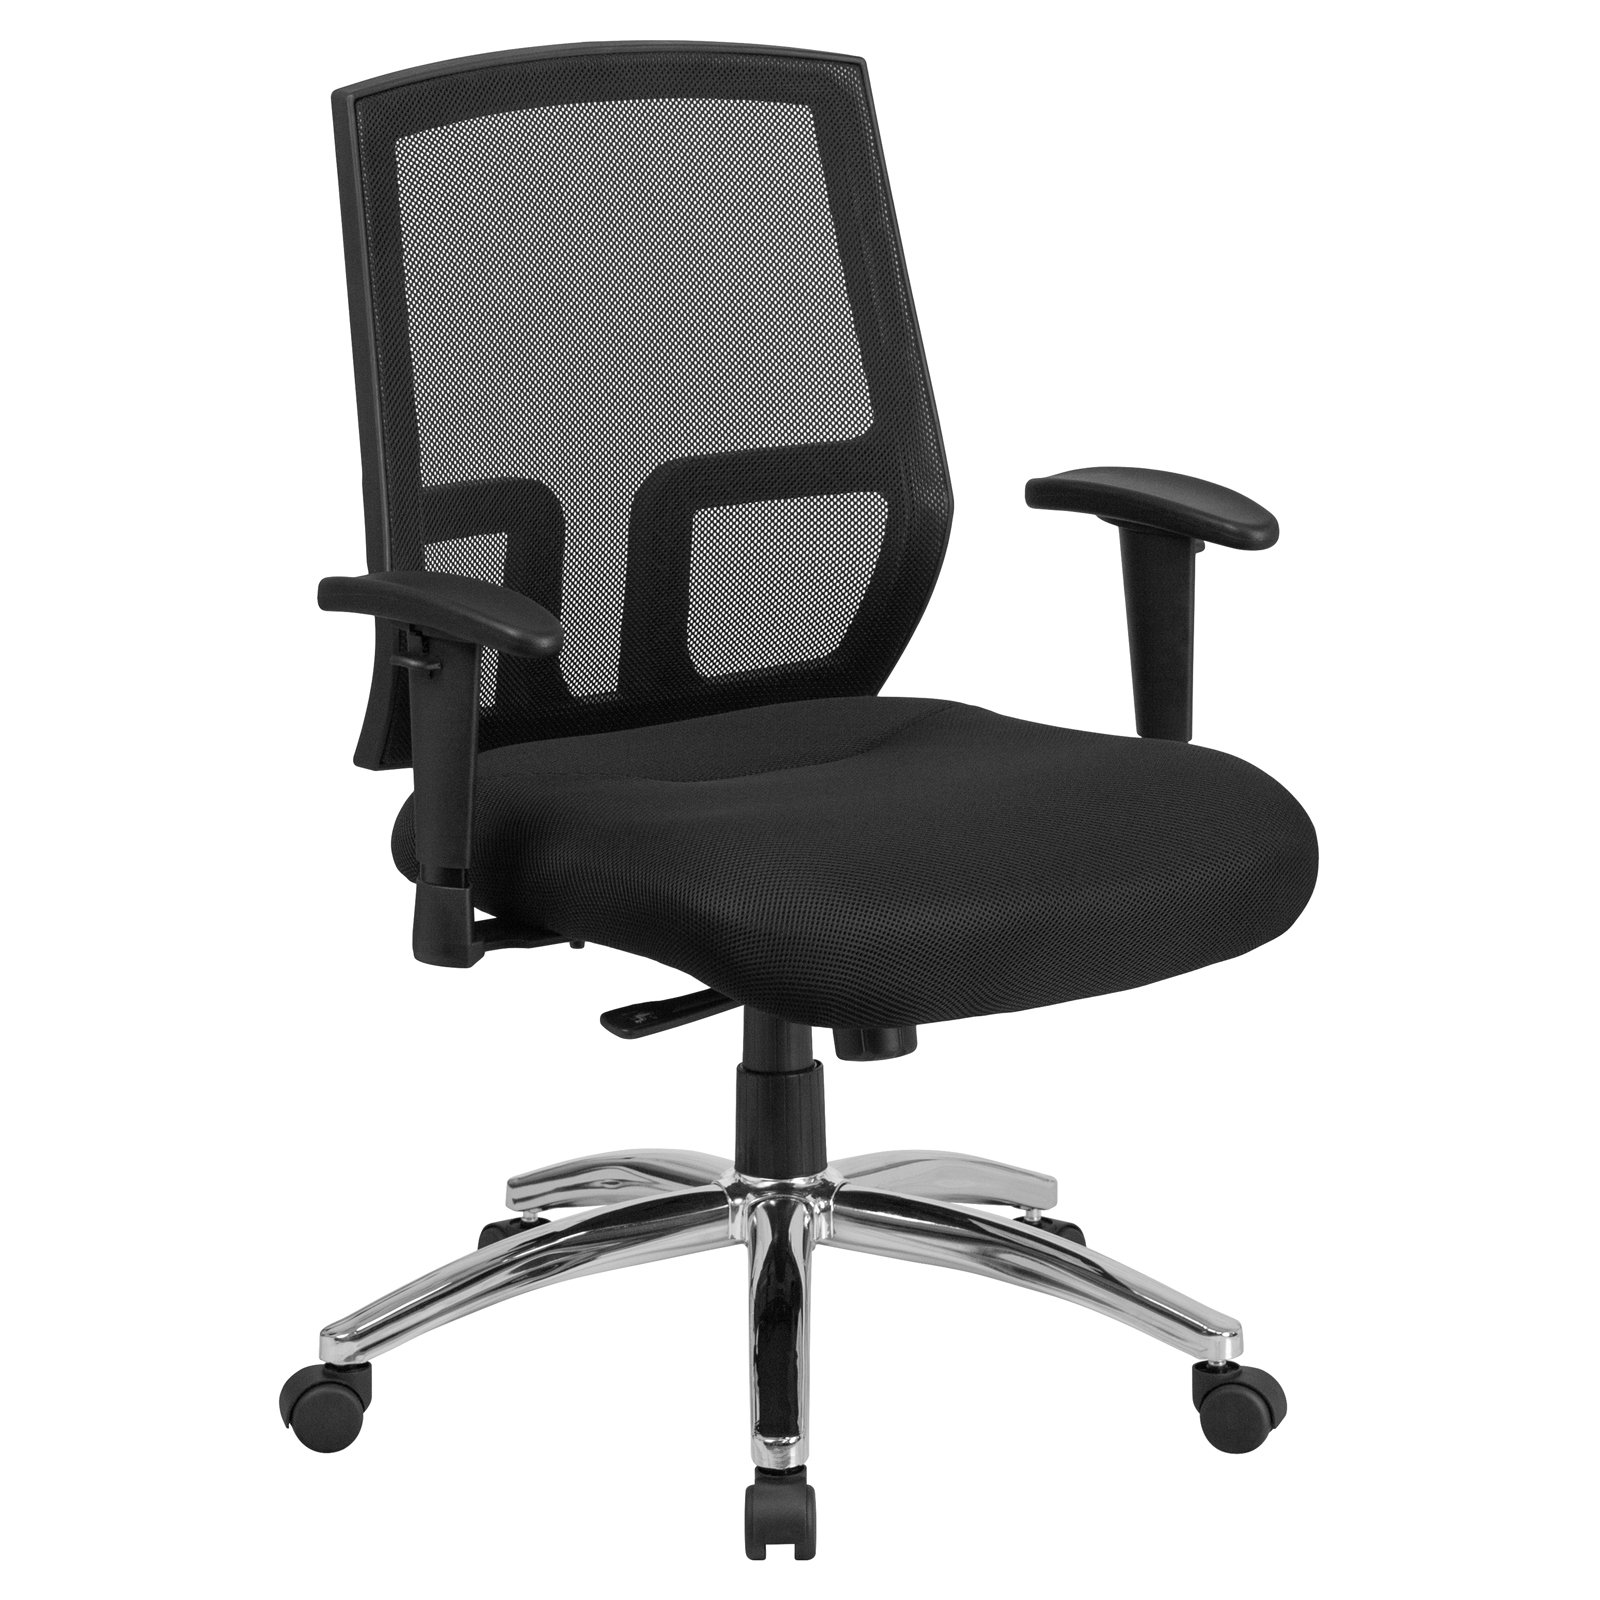 Flash Furniture HERCULES Series 400 lb. Capacity Big & Tall Mesh Mid-Back Executive Swivel Office Chair with Height Adjustable Arms